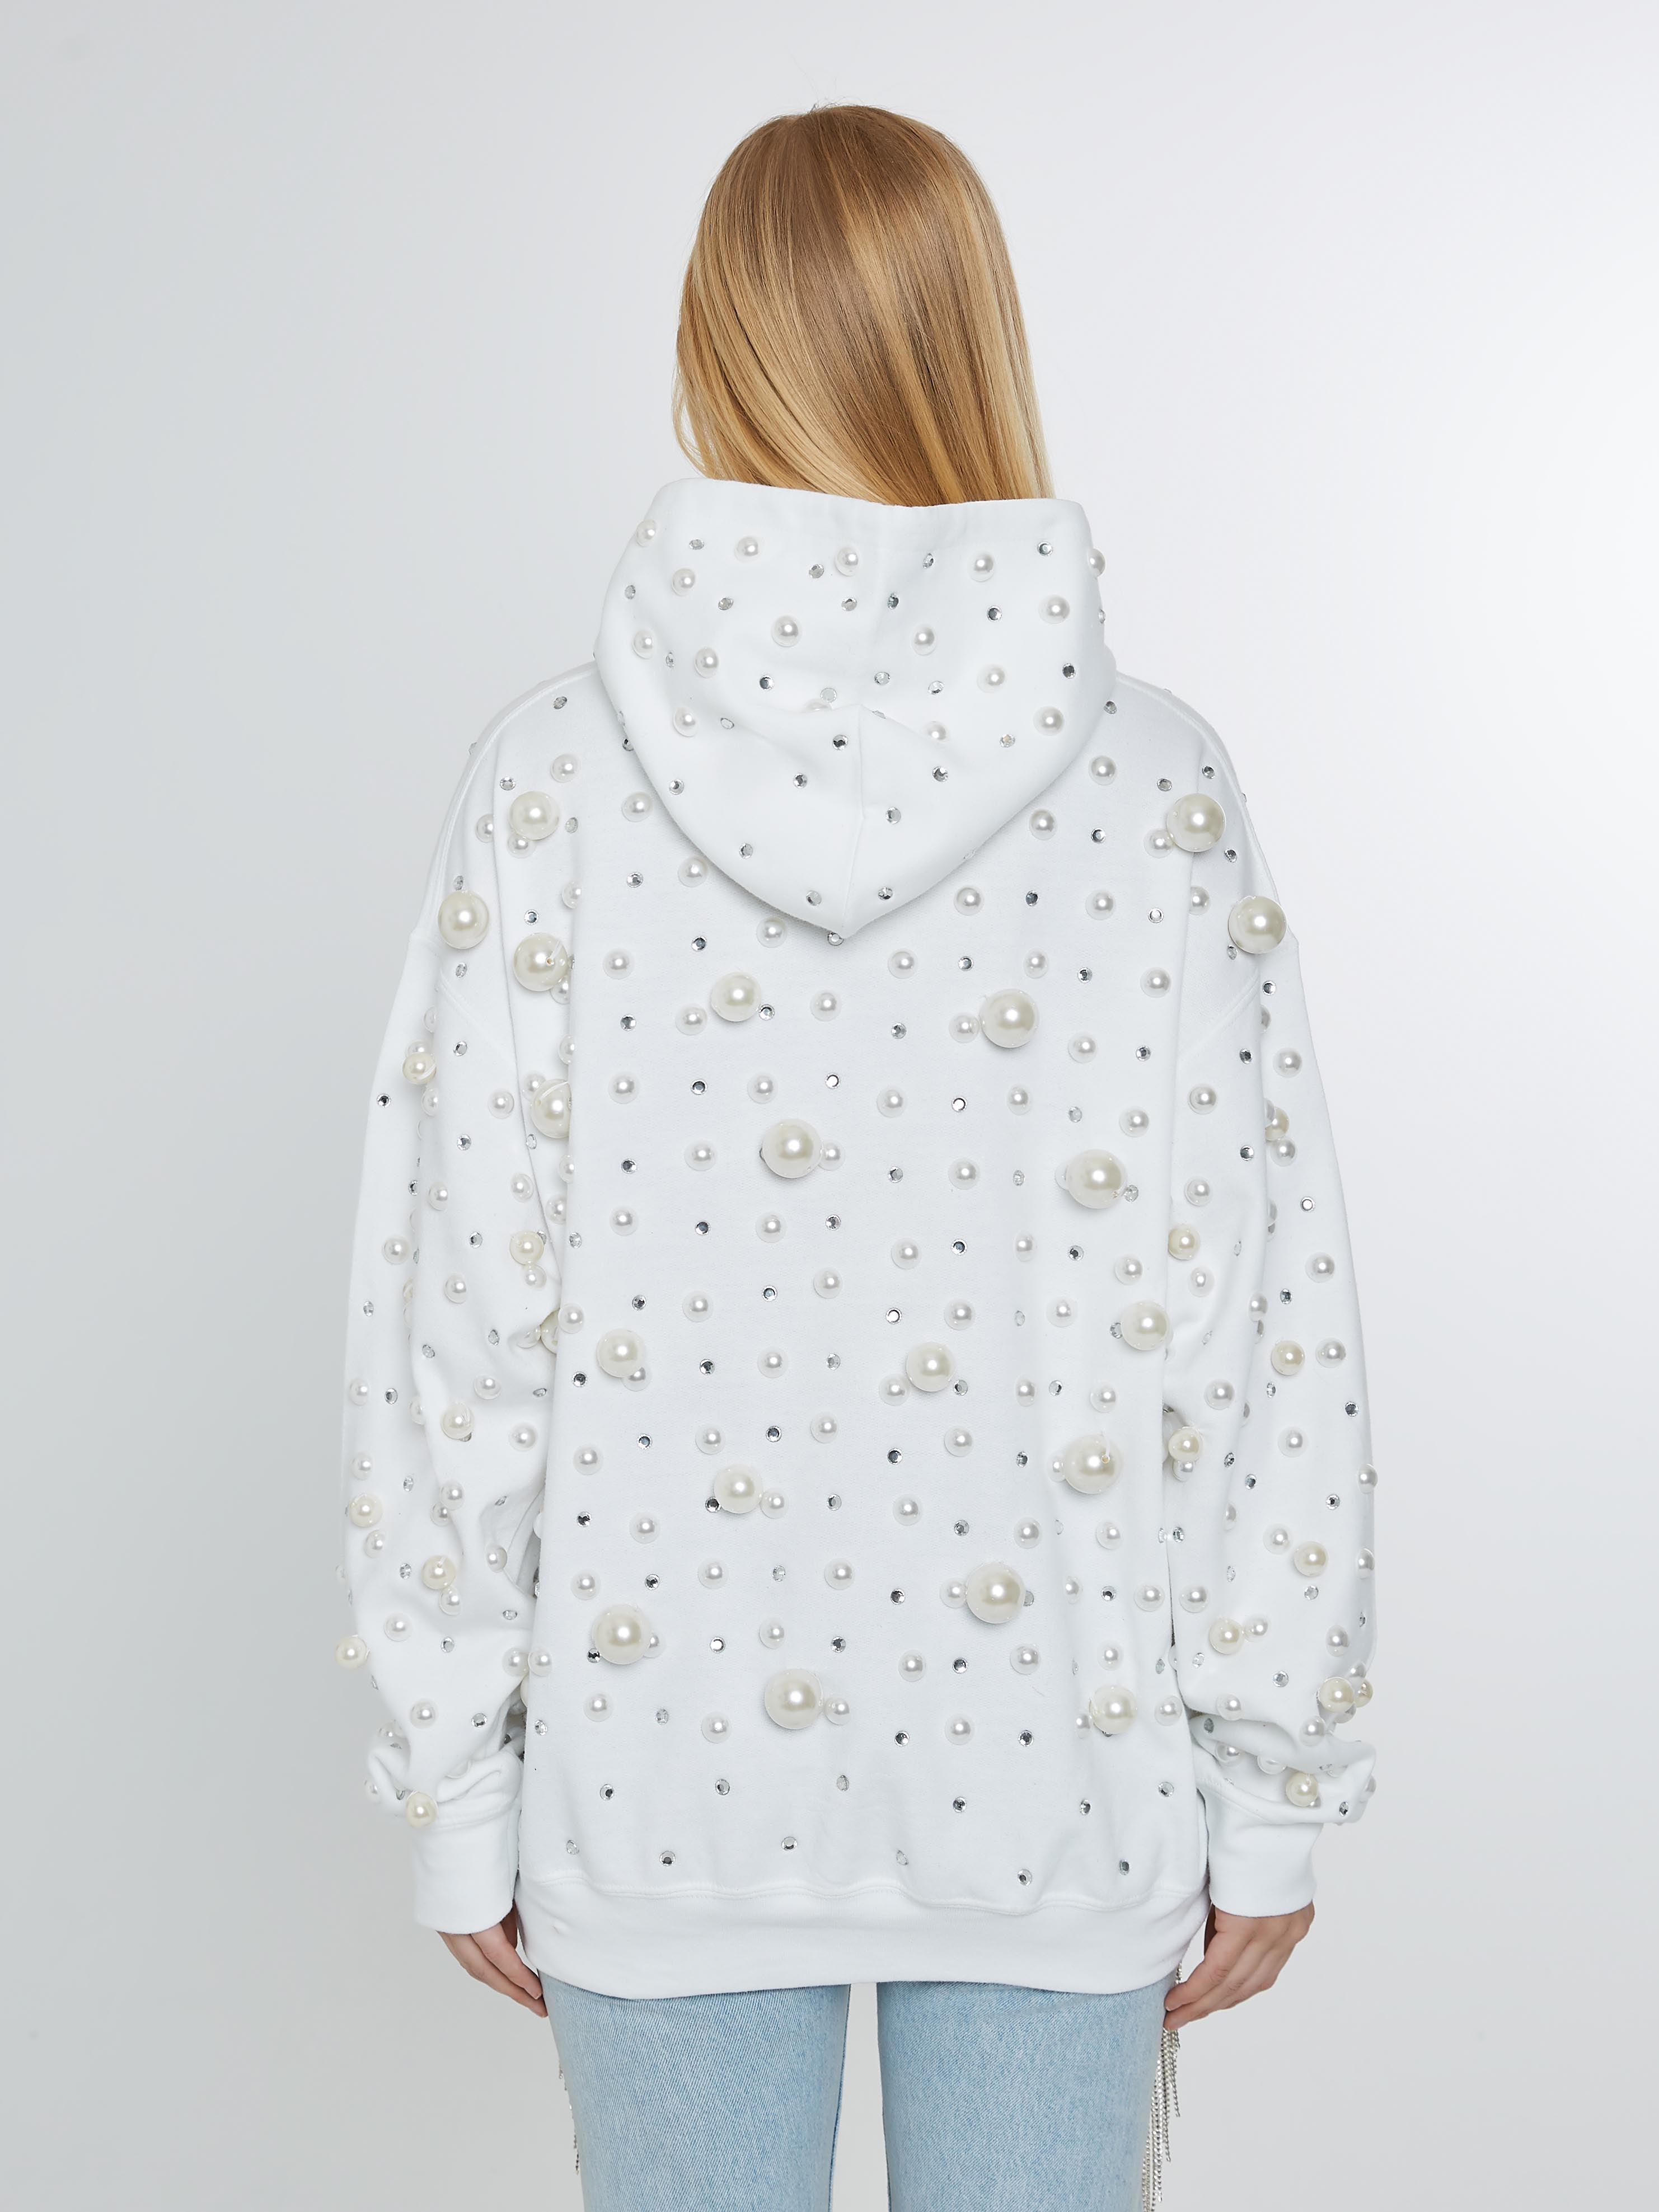 White hoodie with pearls